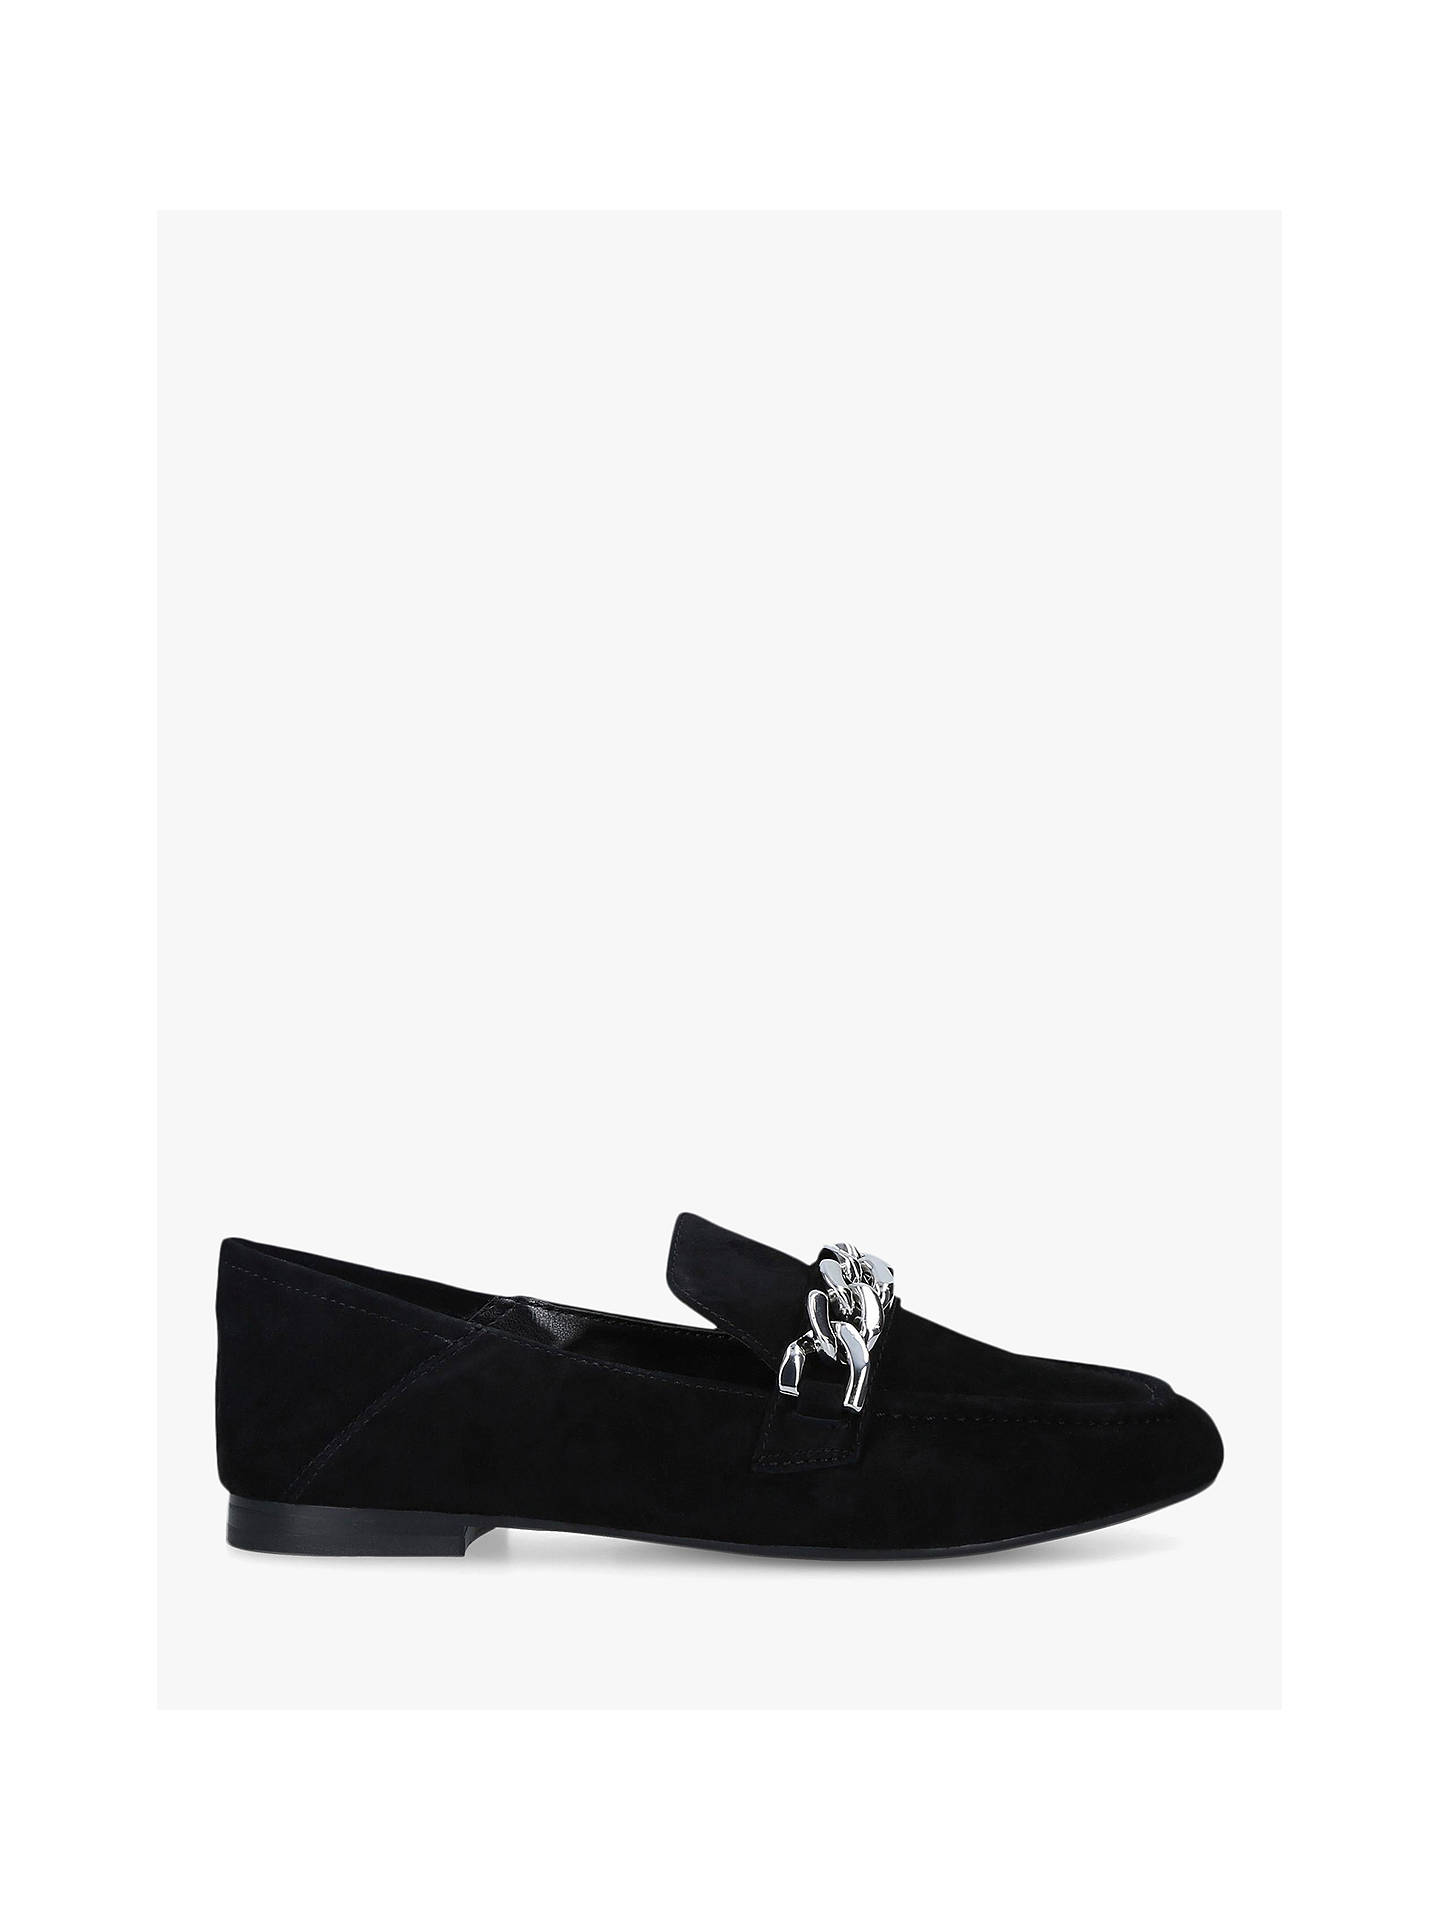 new release lowest price half price Steve Madden Dayna Suede Loafers at John Lewis & Partners